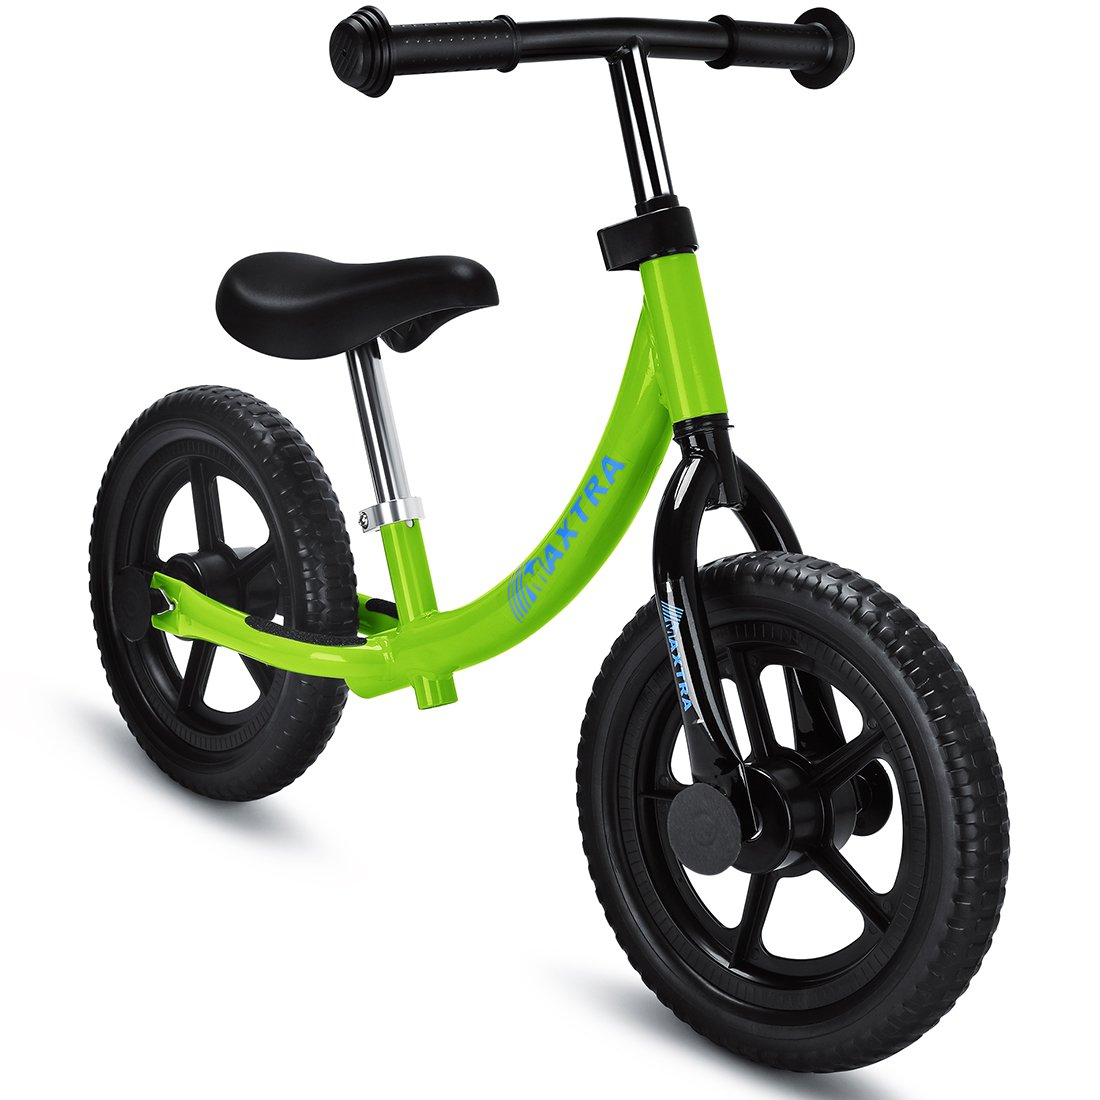 Maxtra Lightweight Balance Bike No Pedal Bicycle Adjustable Handlebar and Seat For Ages 2 to 5 Year old Green